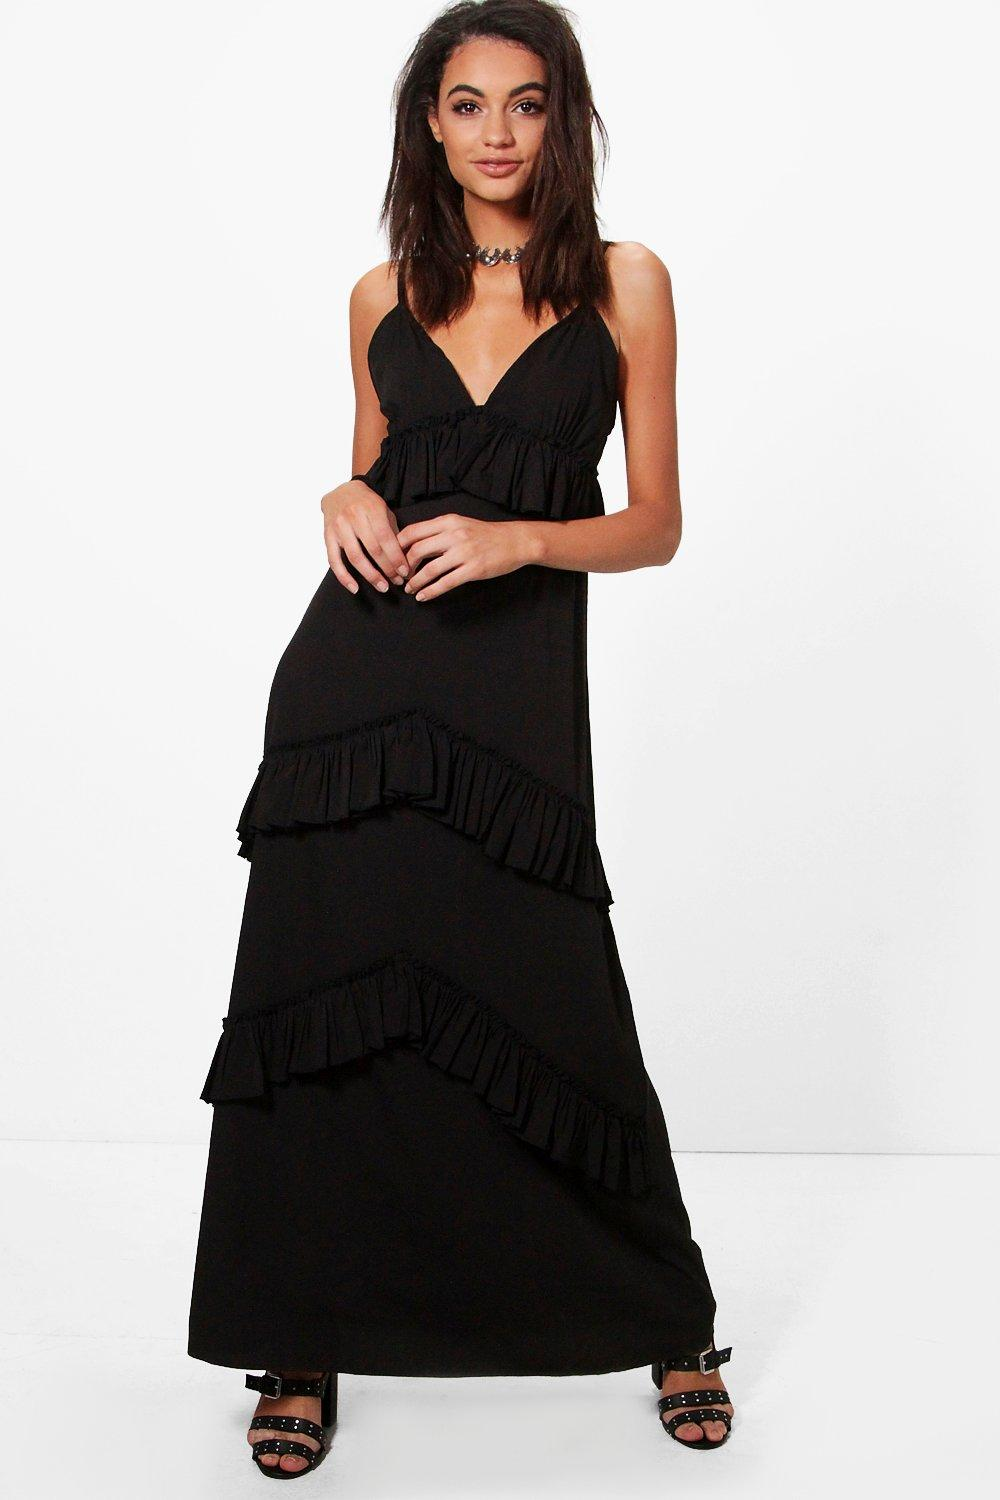 Western Maxi Dresses for Women